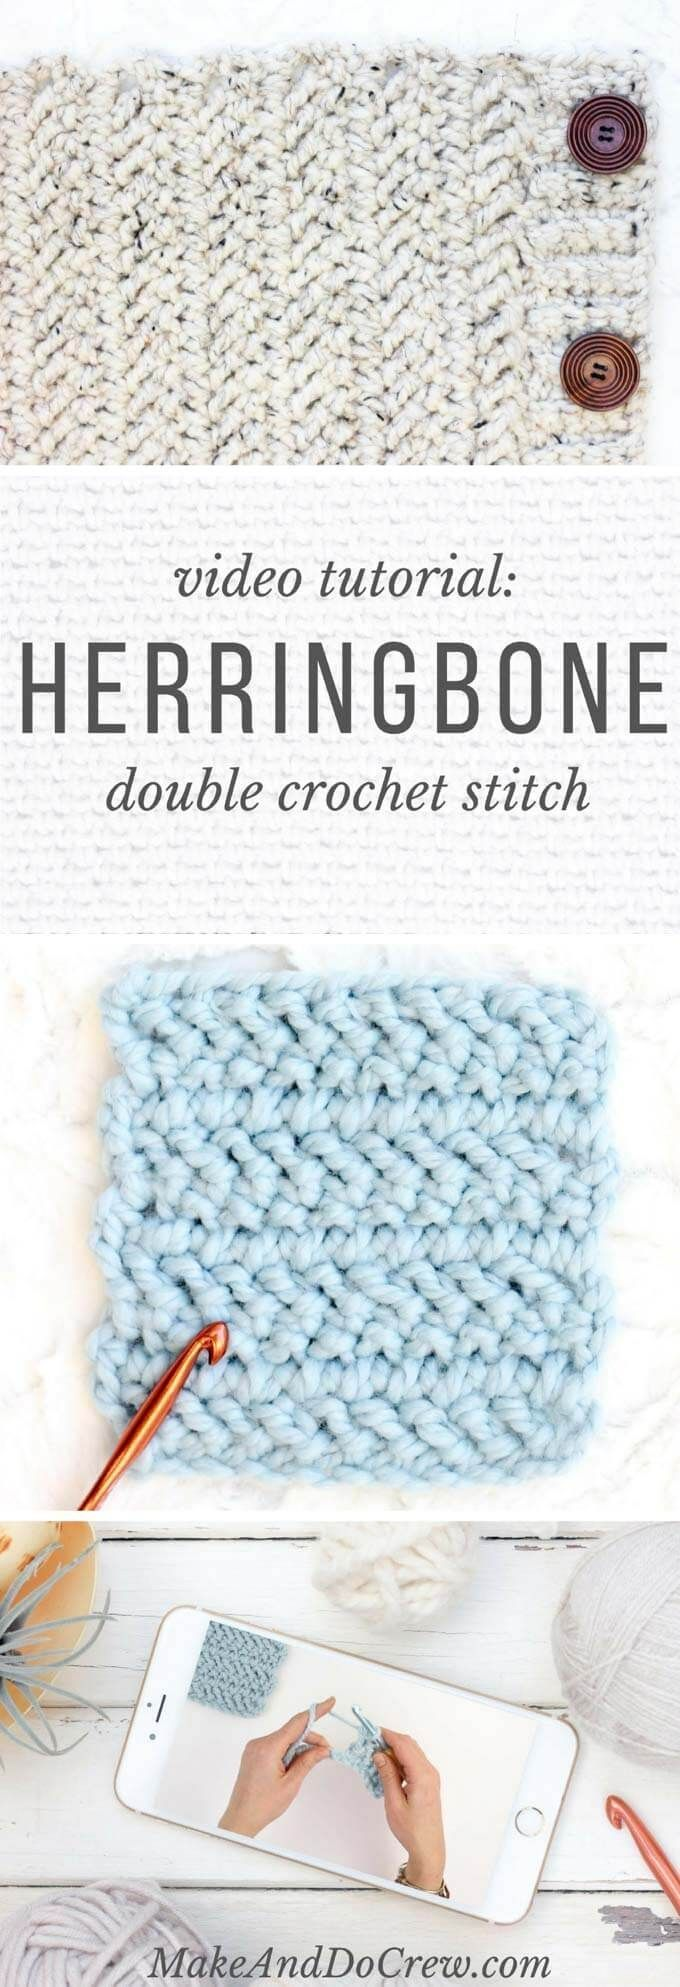 Video: How to Crochet the Herringbone Double Crochet Stitch | Tejido ...